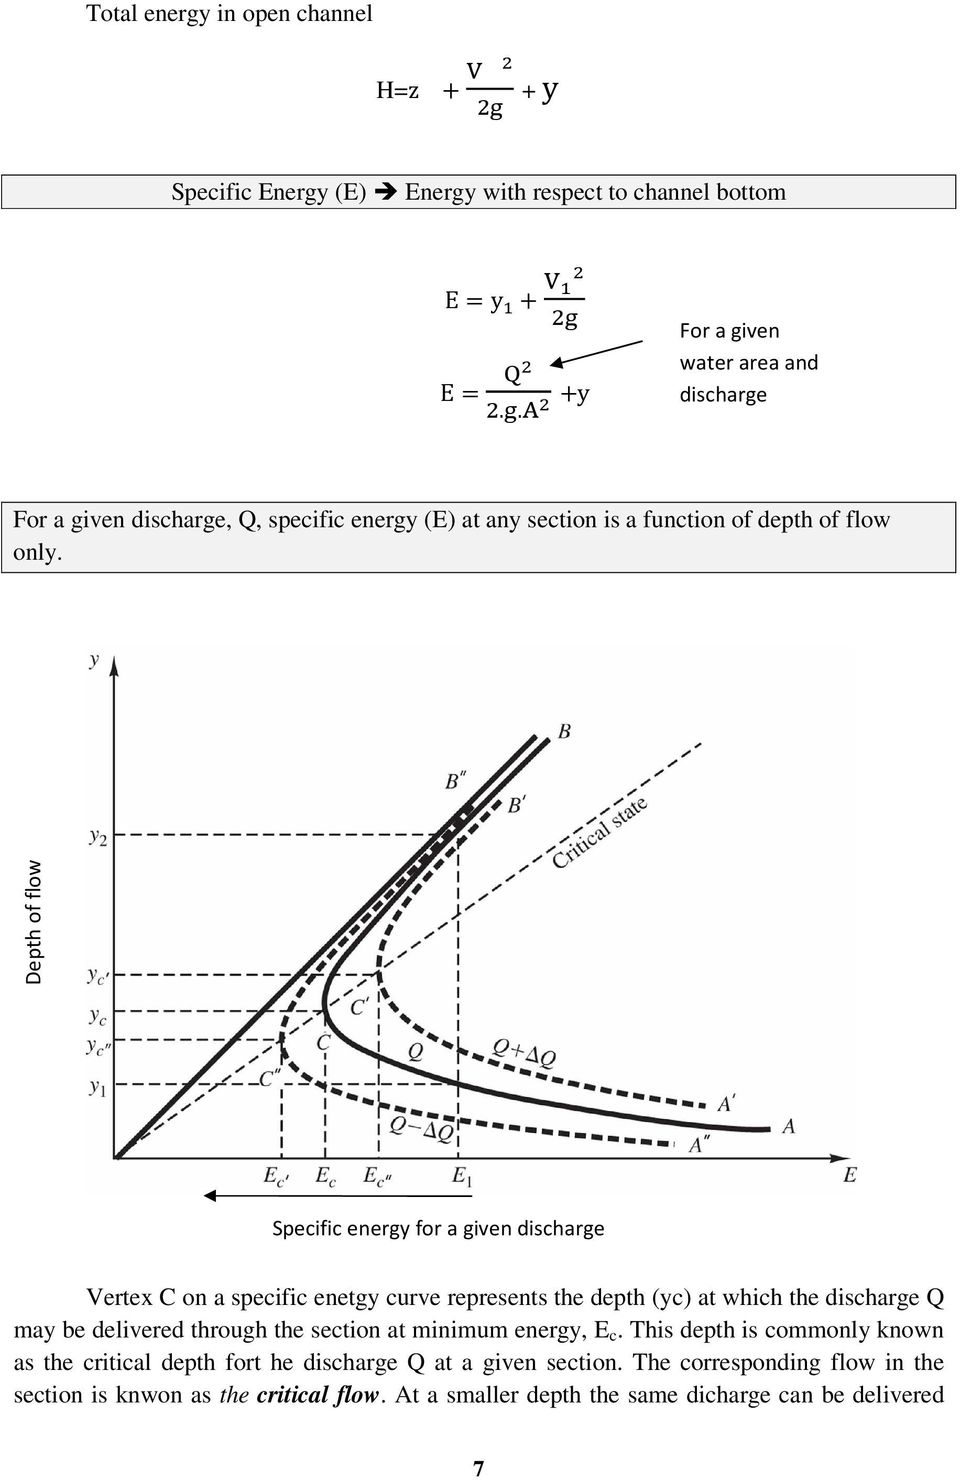 Depth of flow Specific energy for a given discharge Vertex C on a specific enetgy curve represents the depth (yc) at which the discharge Q may be delivered through